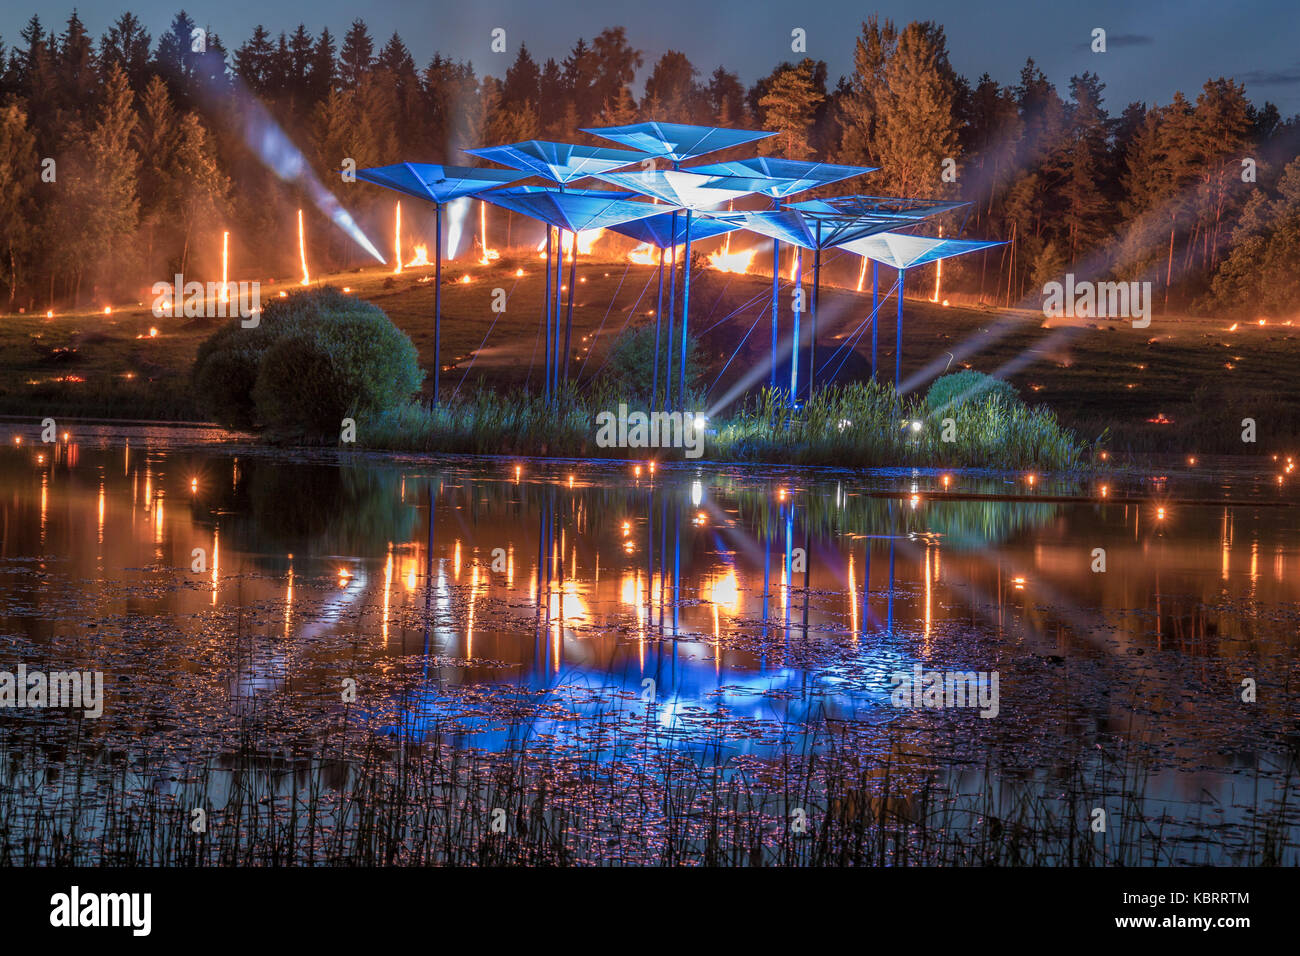 Burning fire in the background with searching lights and reflection from the lake Stock Photo